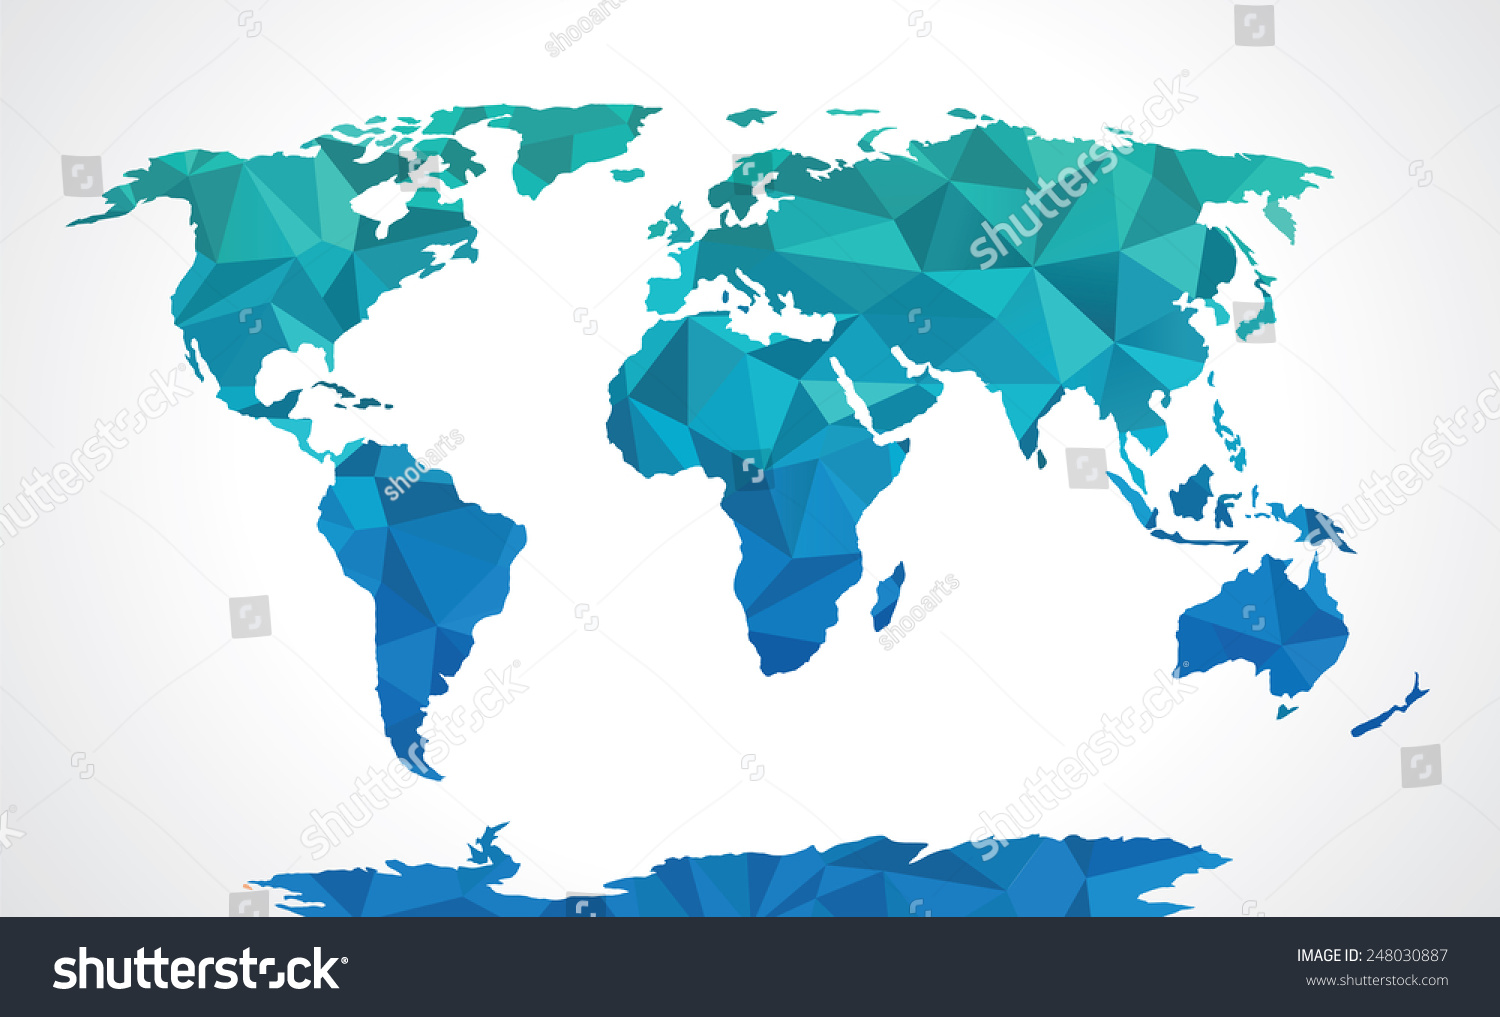 Us map united states map state outlines transparent outline map of global map transparent html global free download images world maps us map transparent background gumiabroncs Images